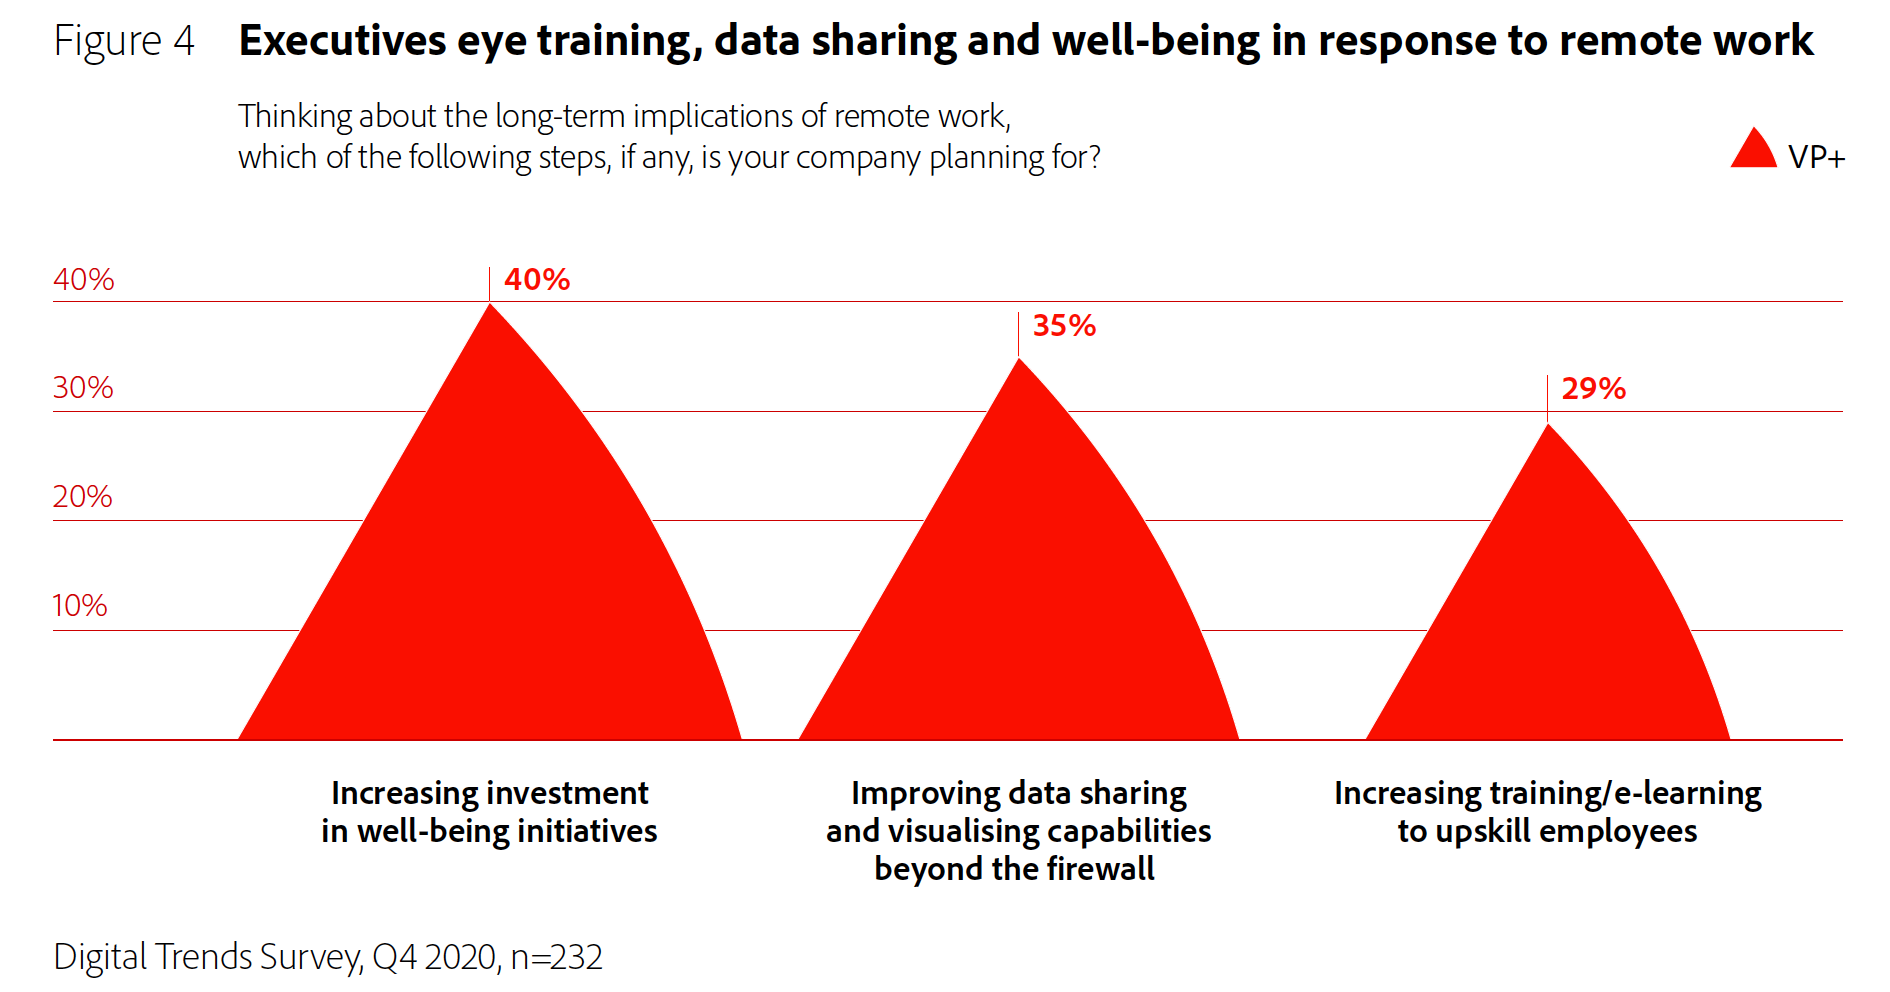 Figure 4: Executives eye training, data sharing and well-being in response to remote work.